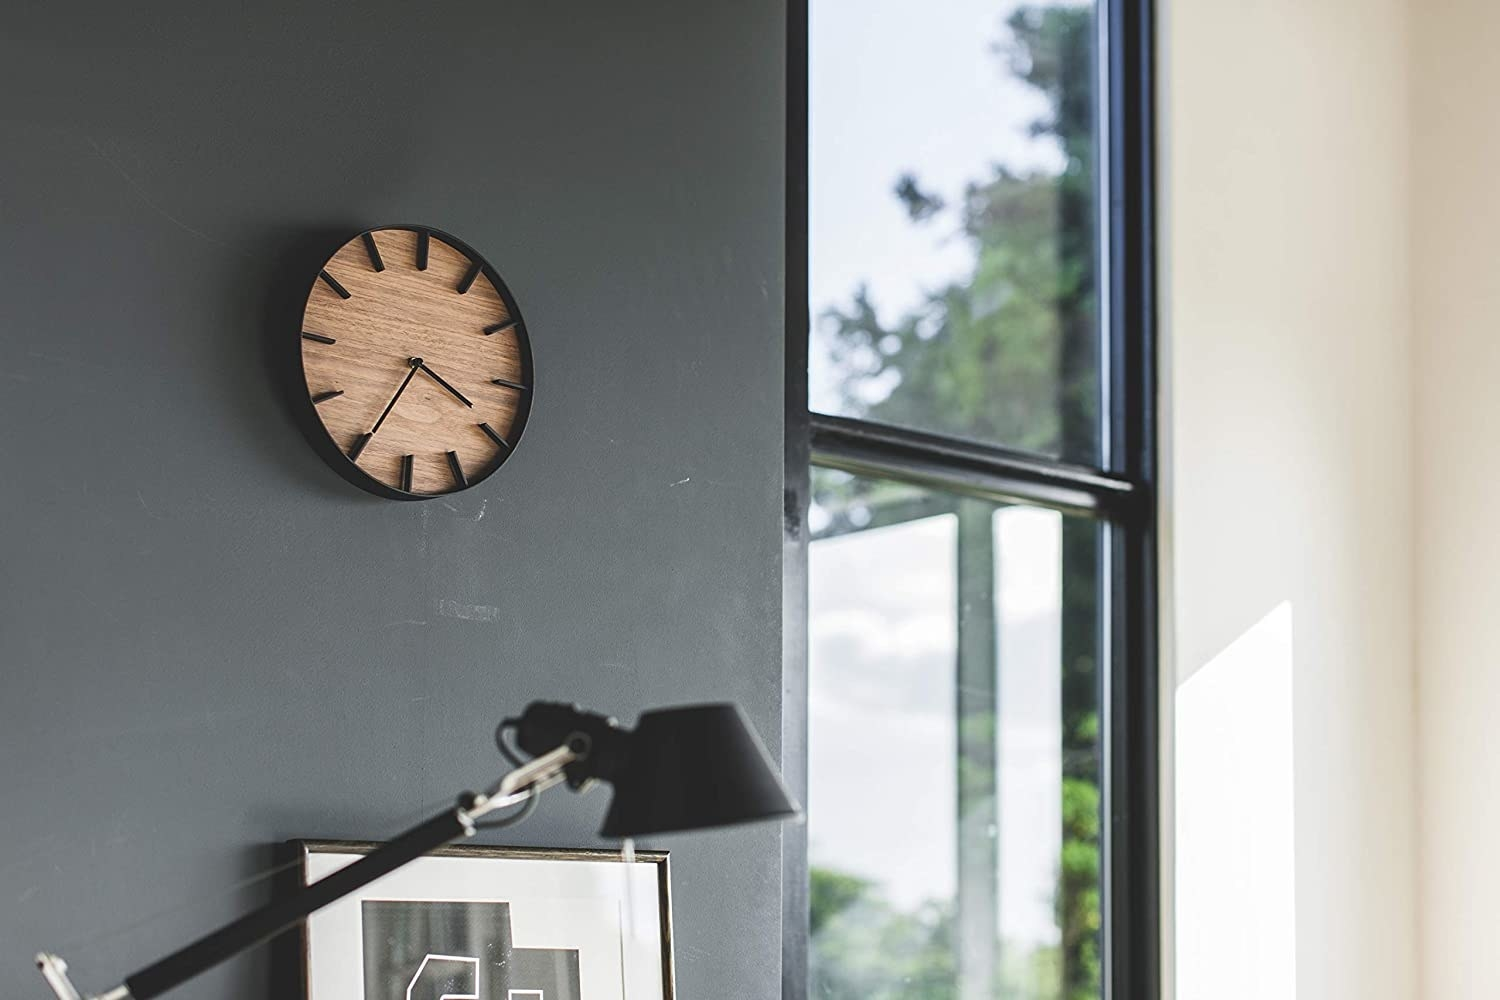 wood clock with black steel accents on an office wall